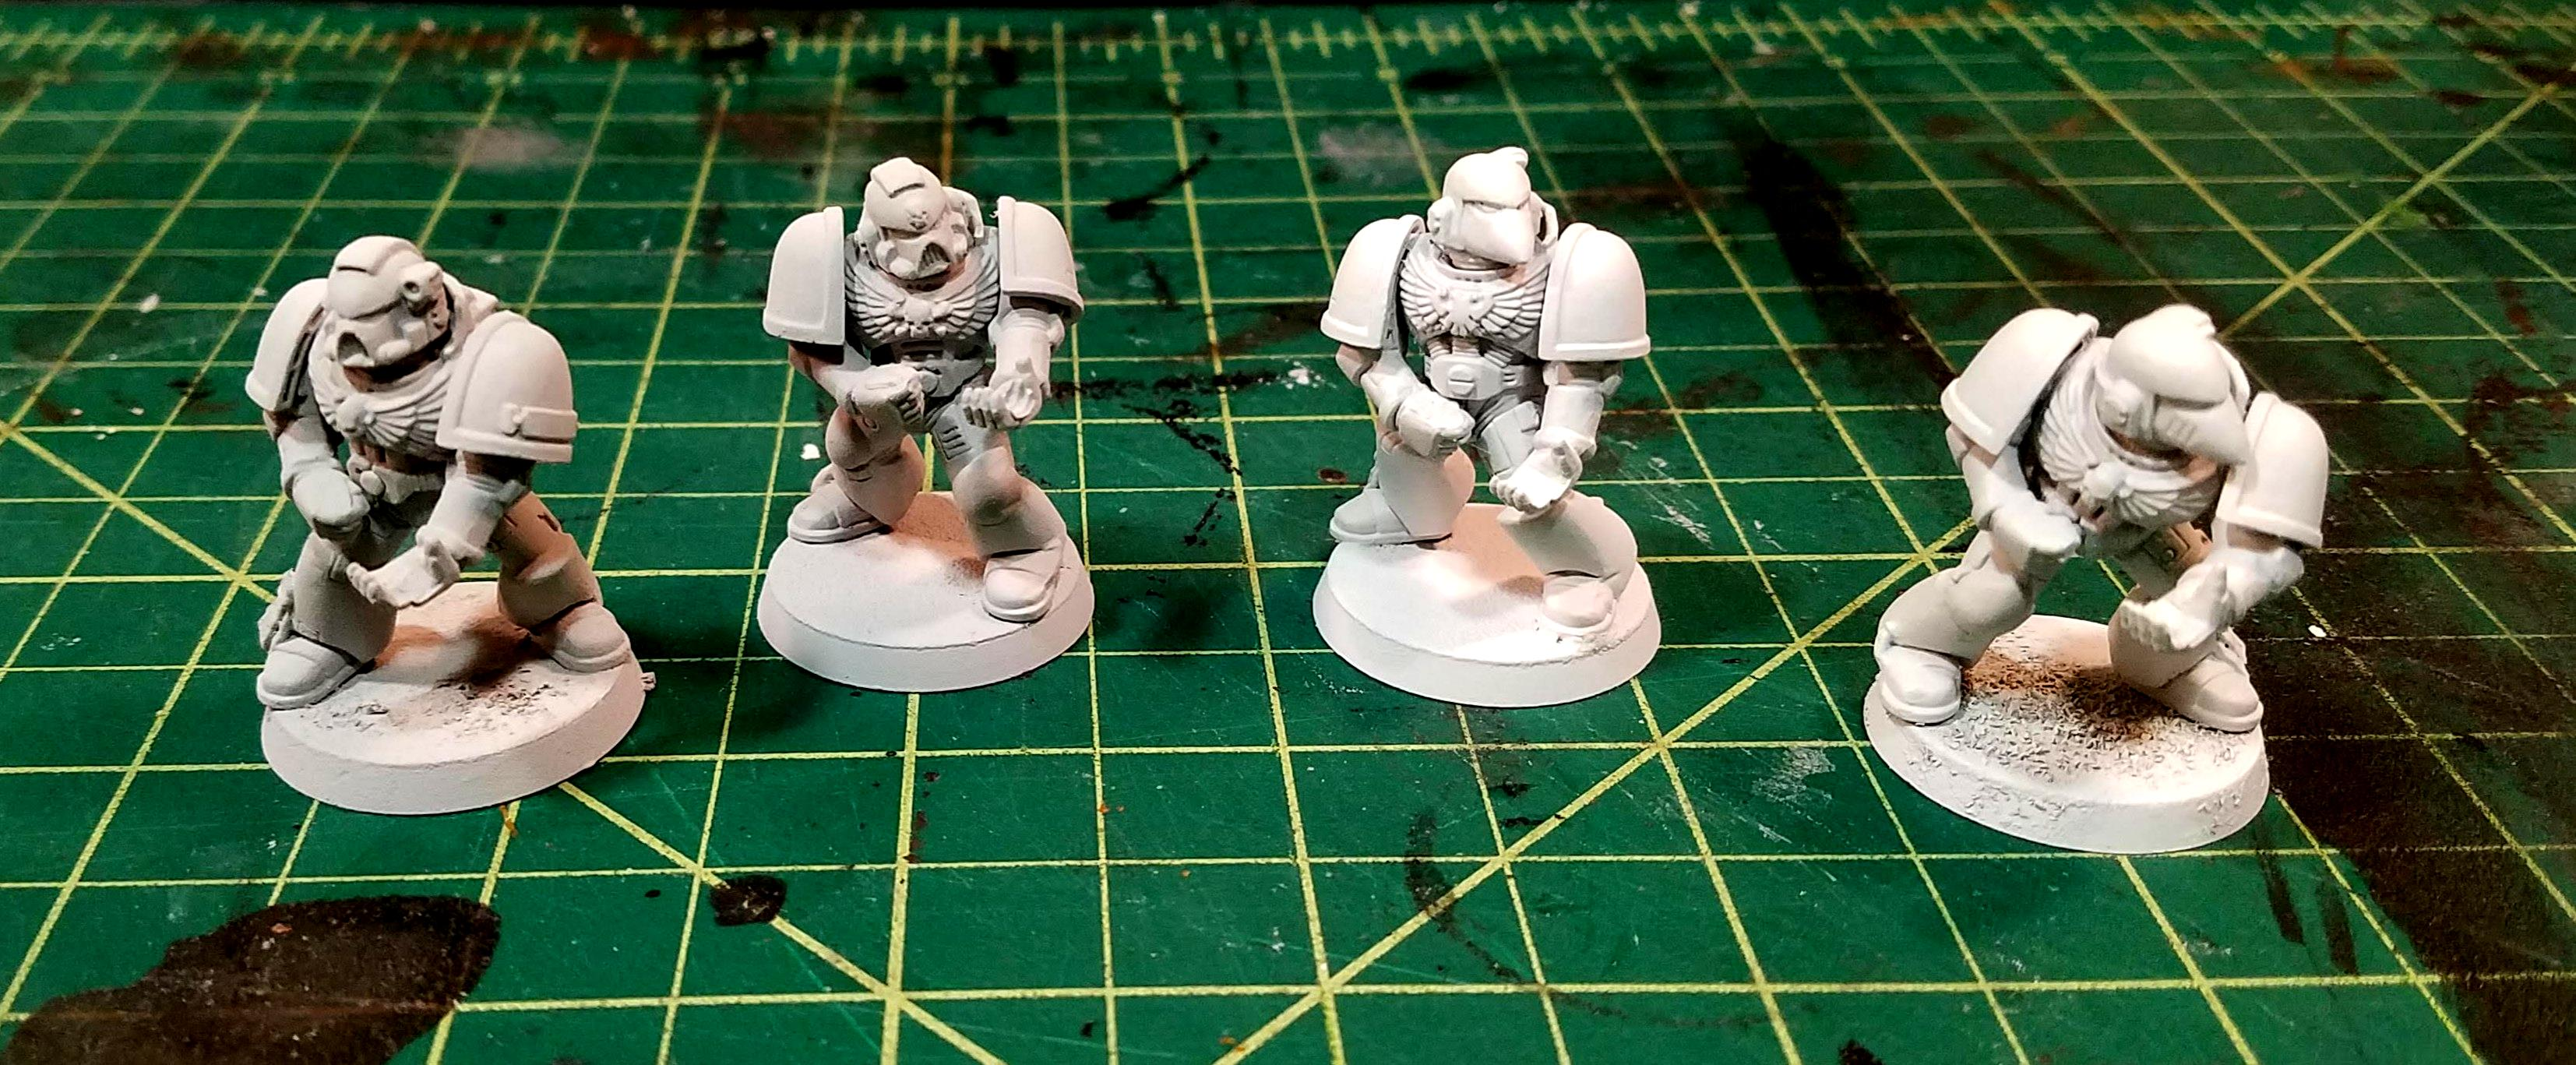 Corax White on the left, 2X Paint/Primer on the right